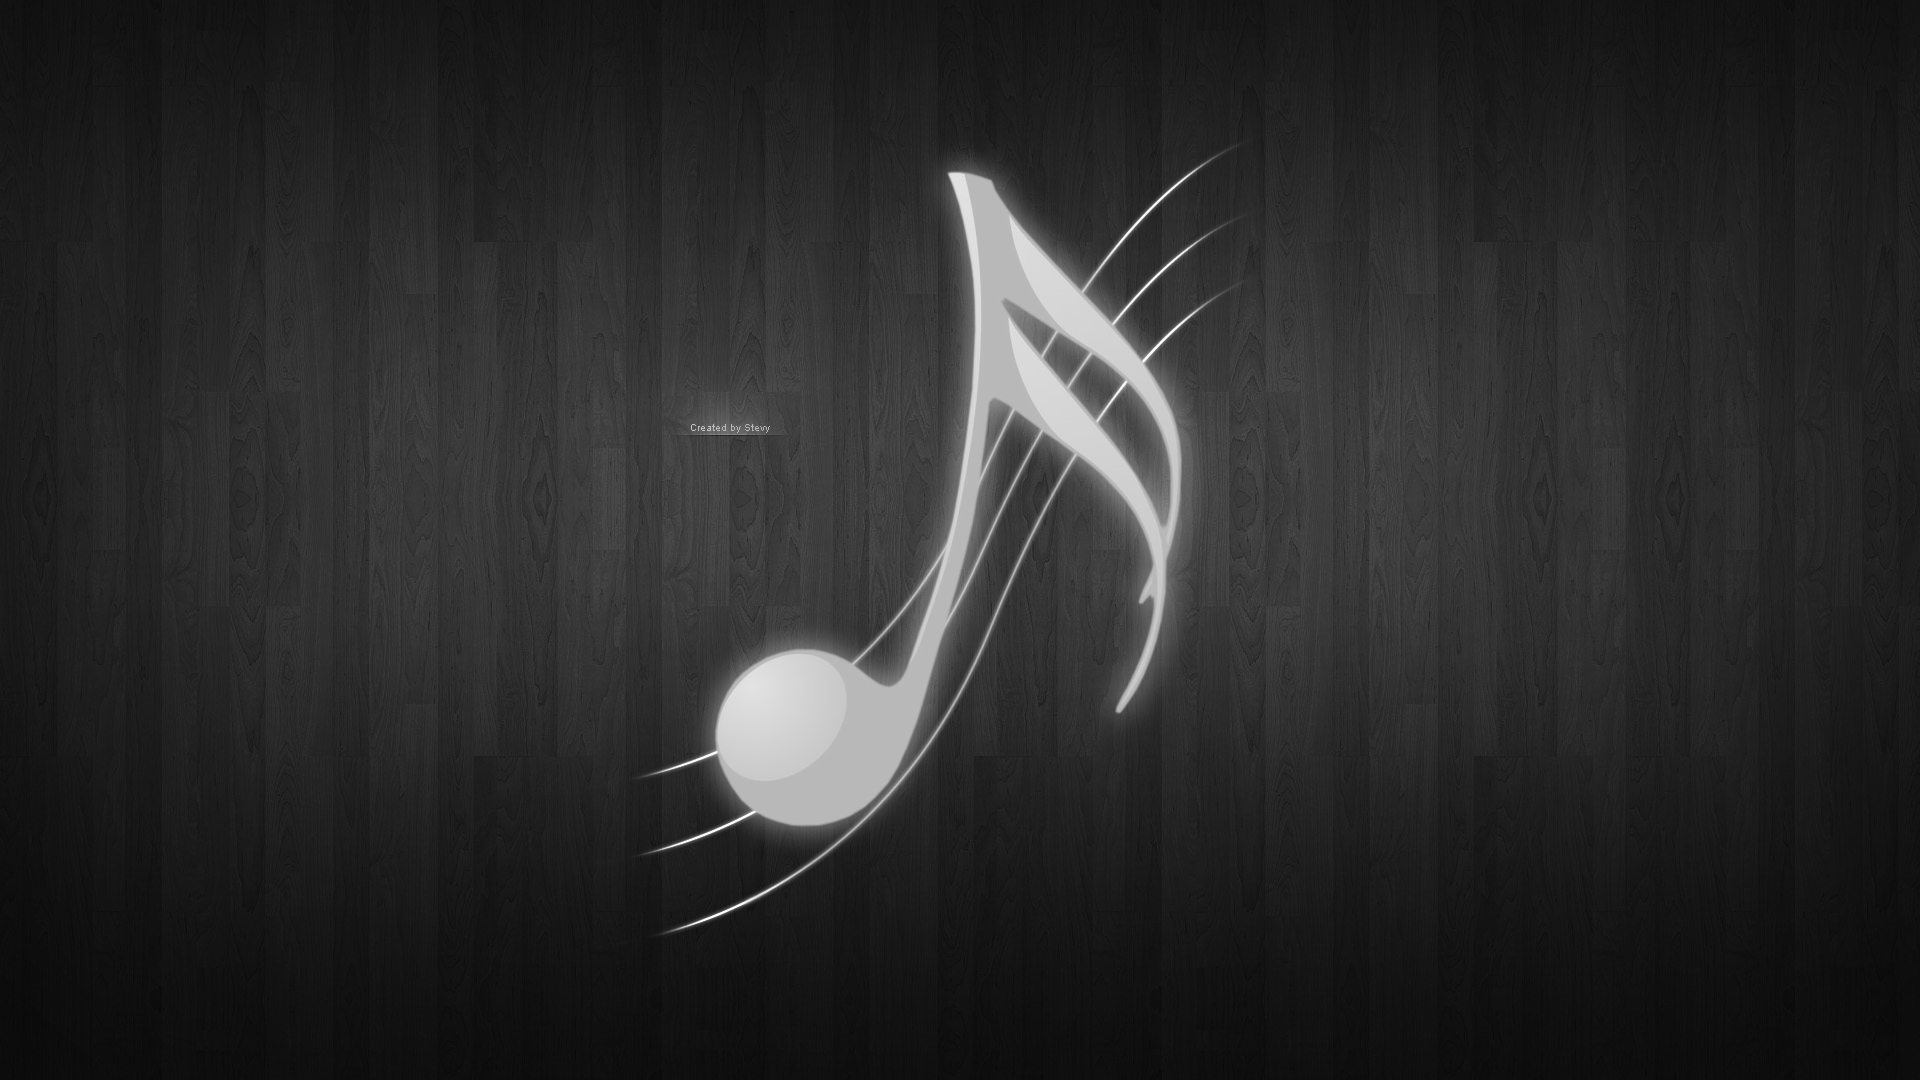 Music Wallpapers